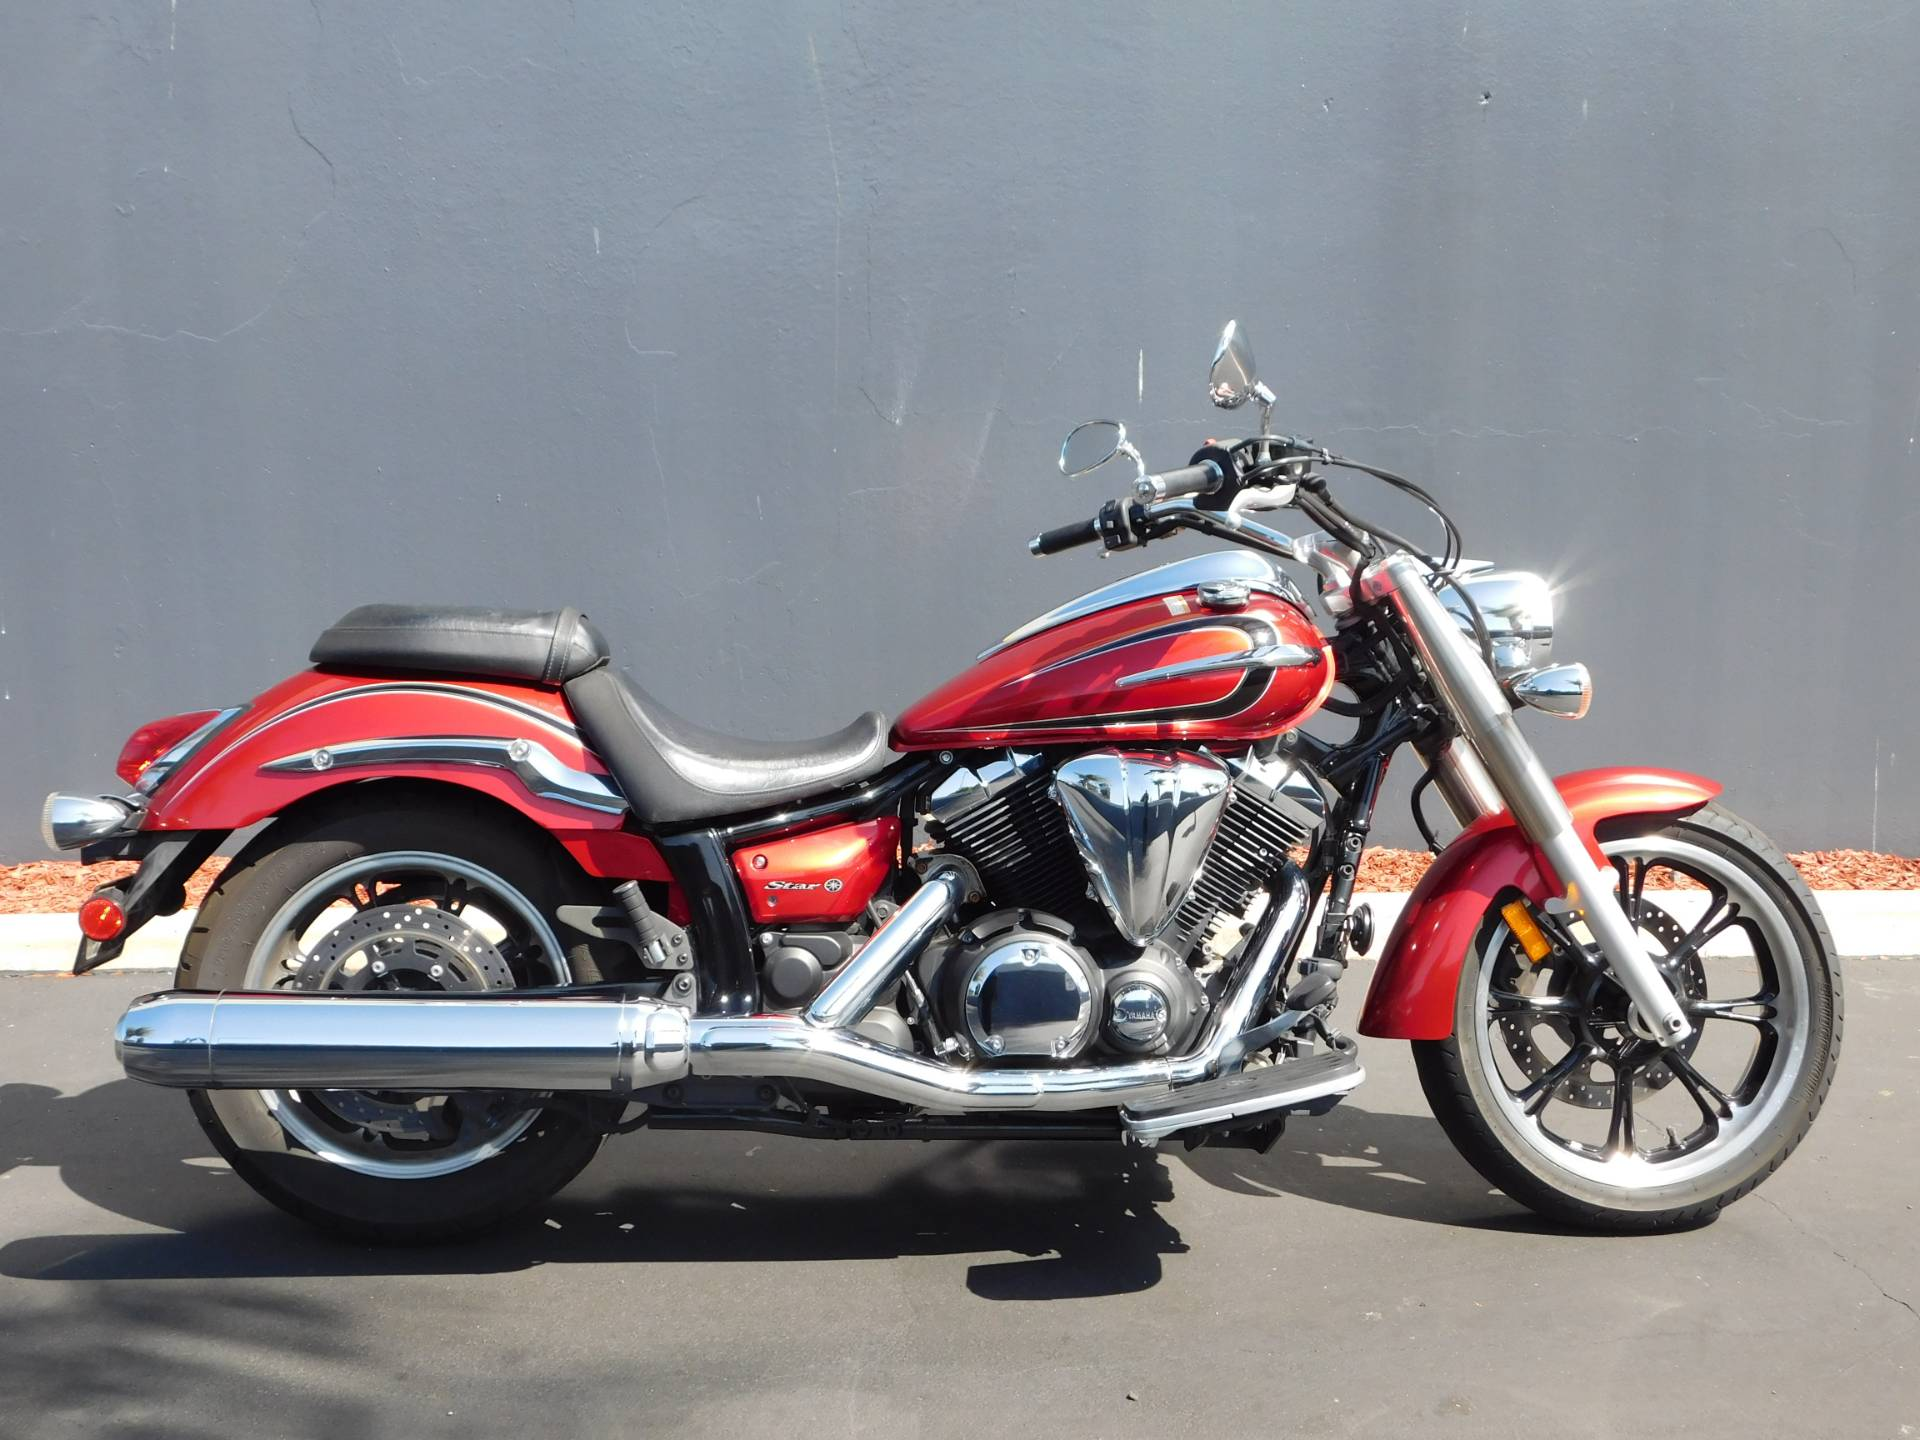 2012 Yamaha V Star 950 in Chula Vista, California - Photo 1